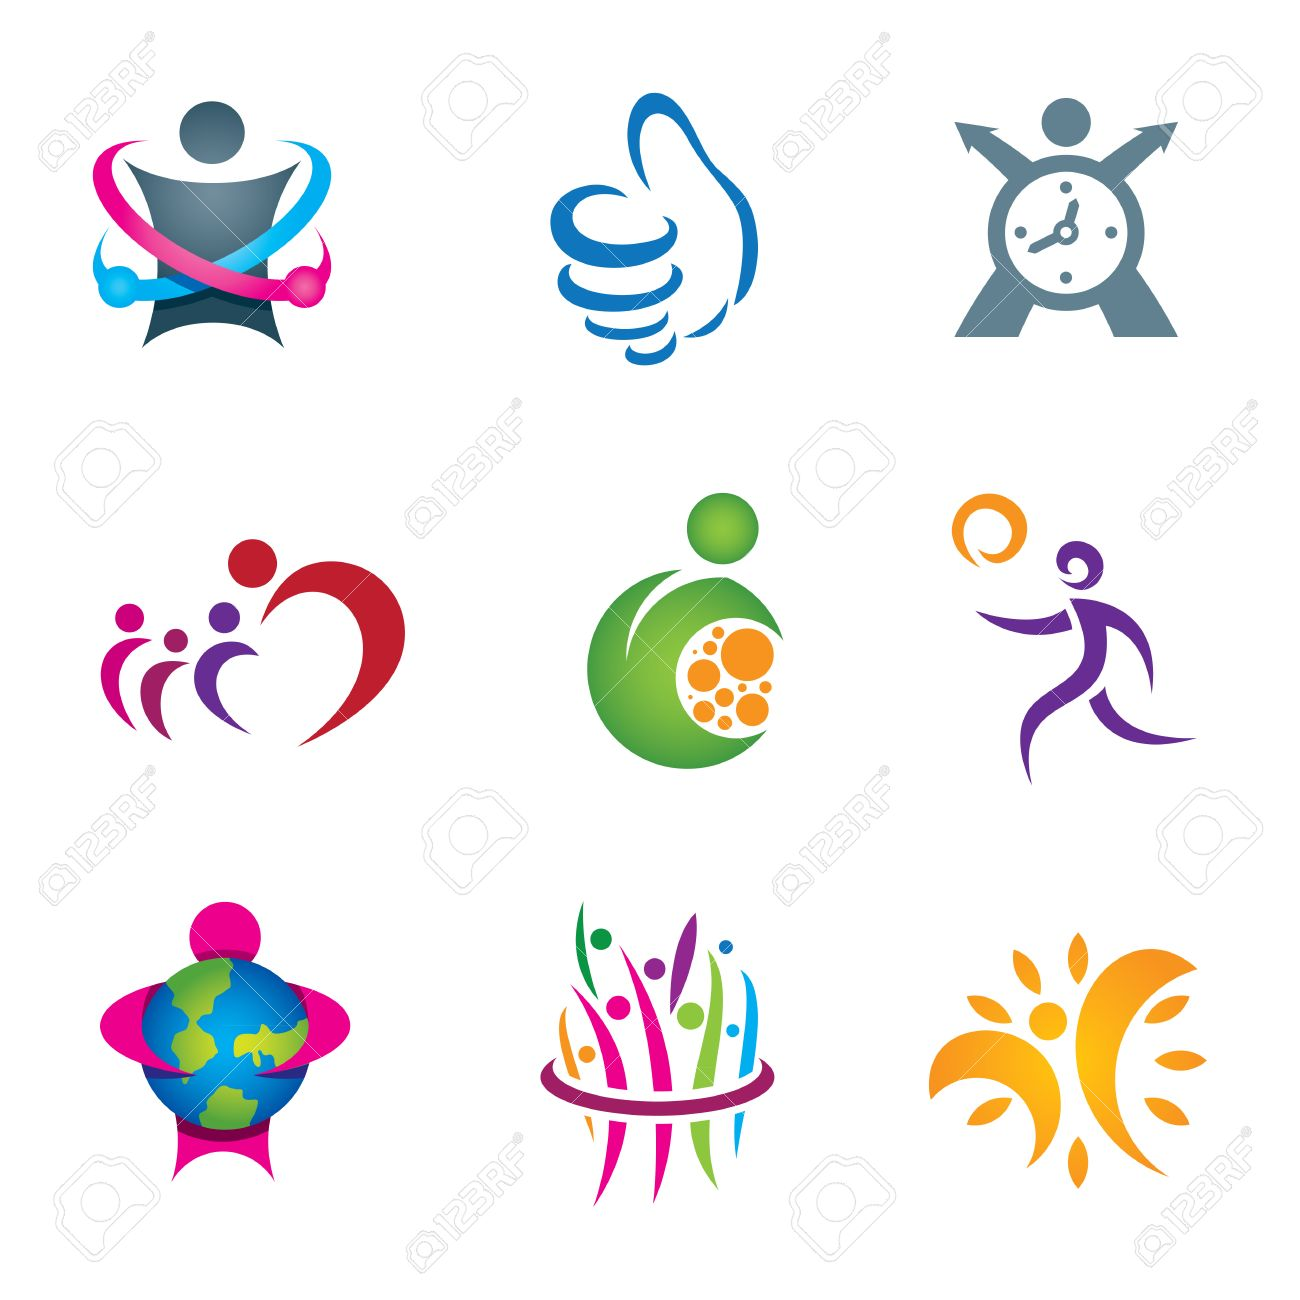 Positive social people exploring and living happy healthy life Stock Vector - 23866670